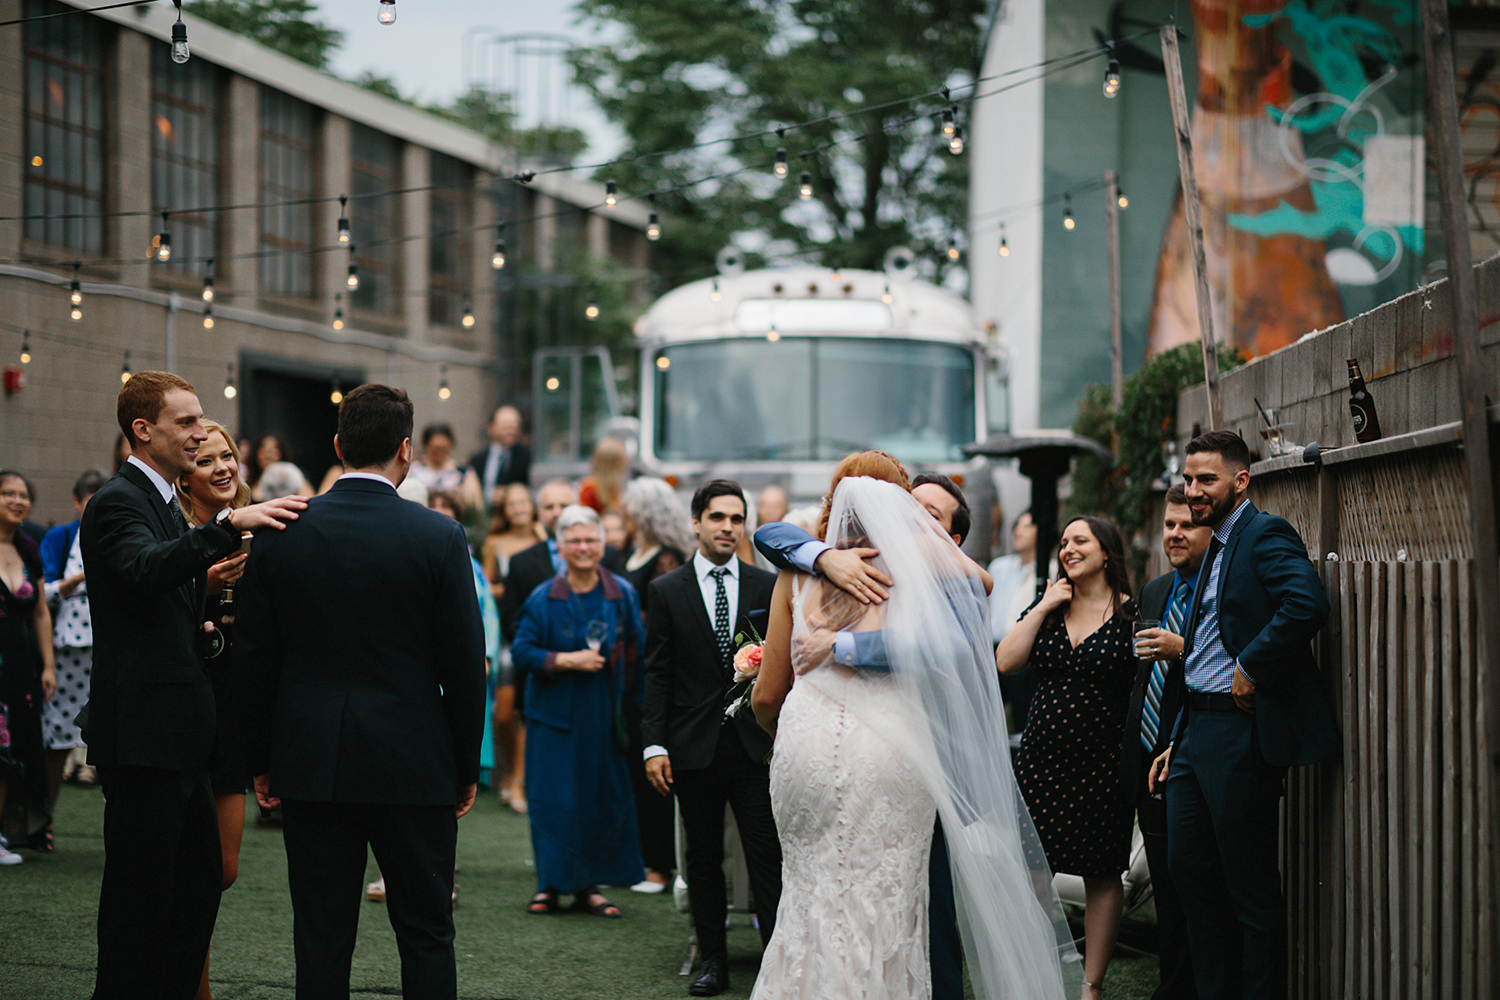 torontos-best-wedding-photographers-ryanne-hollies-photography-photojournalism-artistic-moody-toronto-airship37-graffiti-editorial-cocktail-hour-guests-cheering-for-bride-and-groom-hugs.jpg